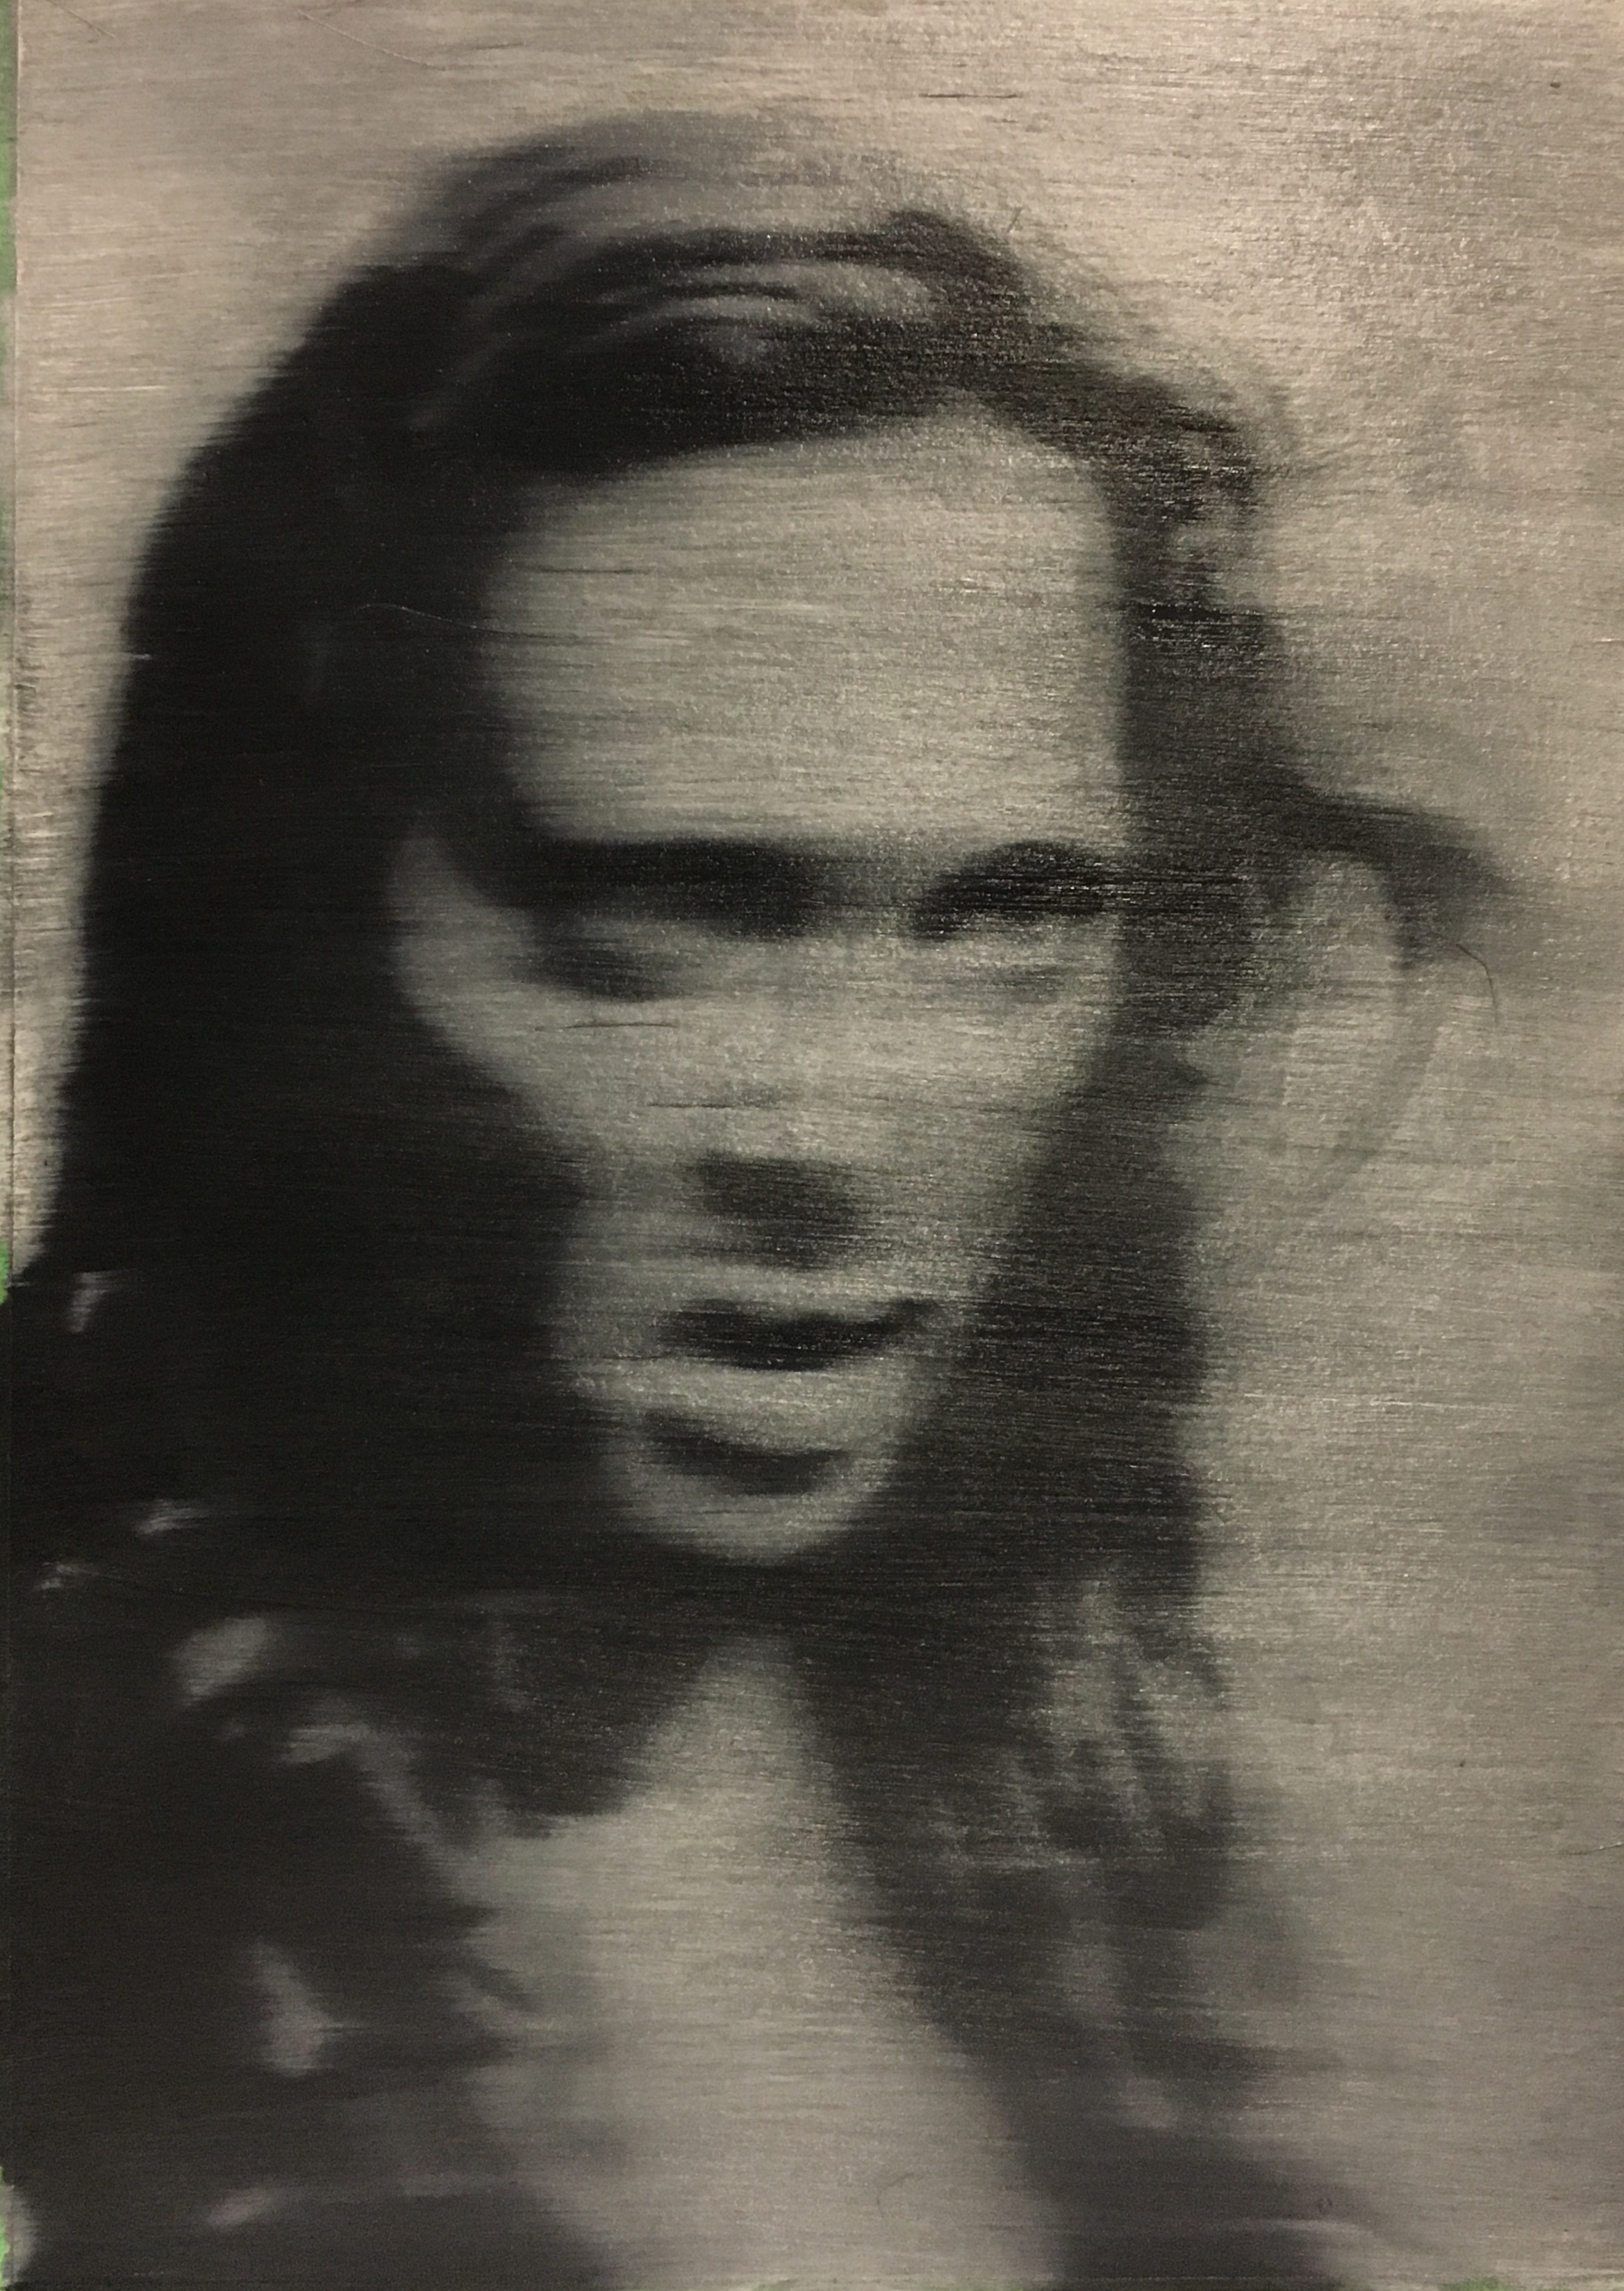 Heather, after Richter, 2017, oil on paper, 16 x 12 inches  SOLD